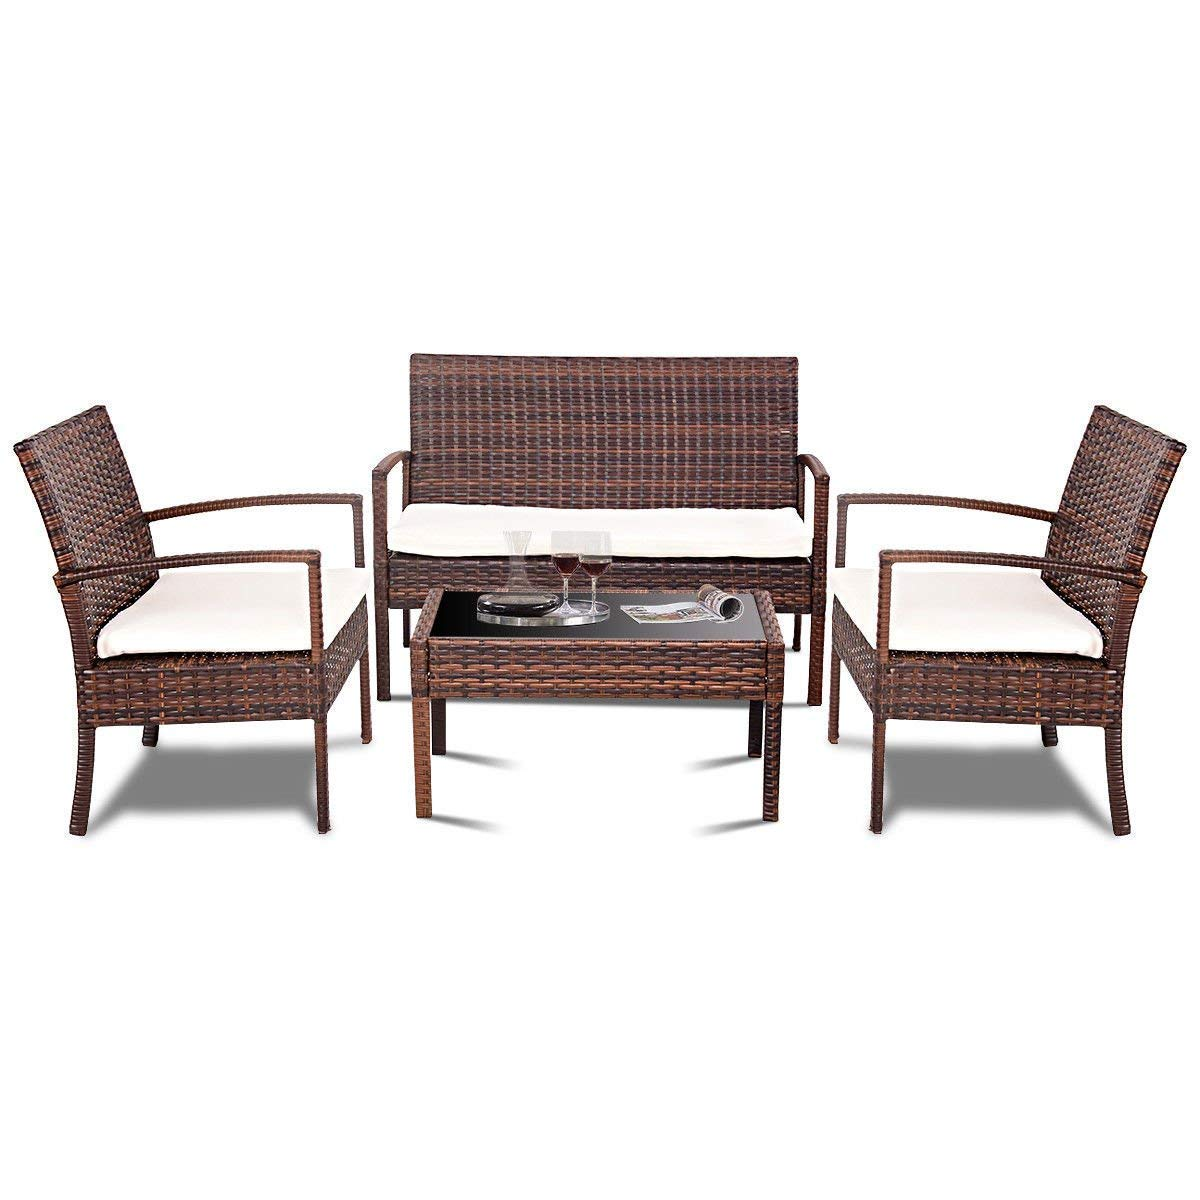 TANGKULA 4 Piece Patio Outdoor Conversation Set with Glass Coffee Table, Loveseat & 2 Cushioned Chairs Garden Lawn Rattan Wicker Patio Chat Set Outdoor Furniture Set (Brown)